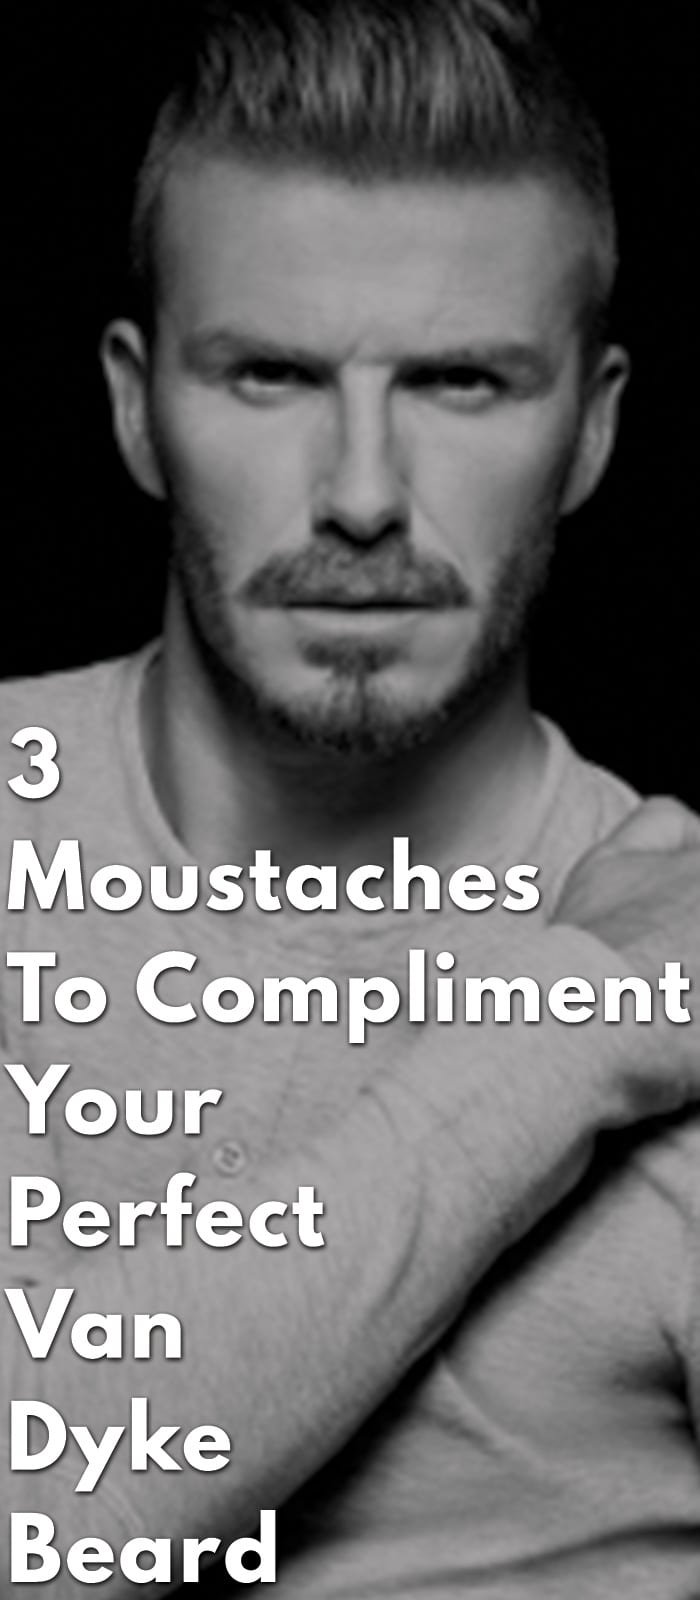 3-Moustaches-To-Compliment-Your-Perfect-Van-Dyke-Beard